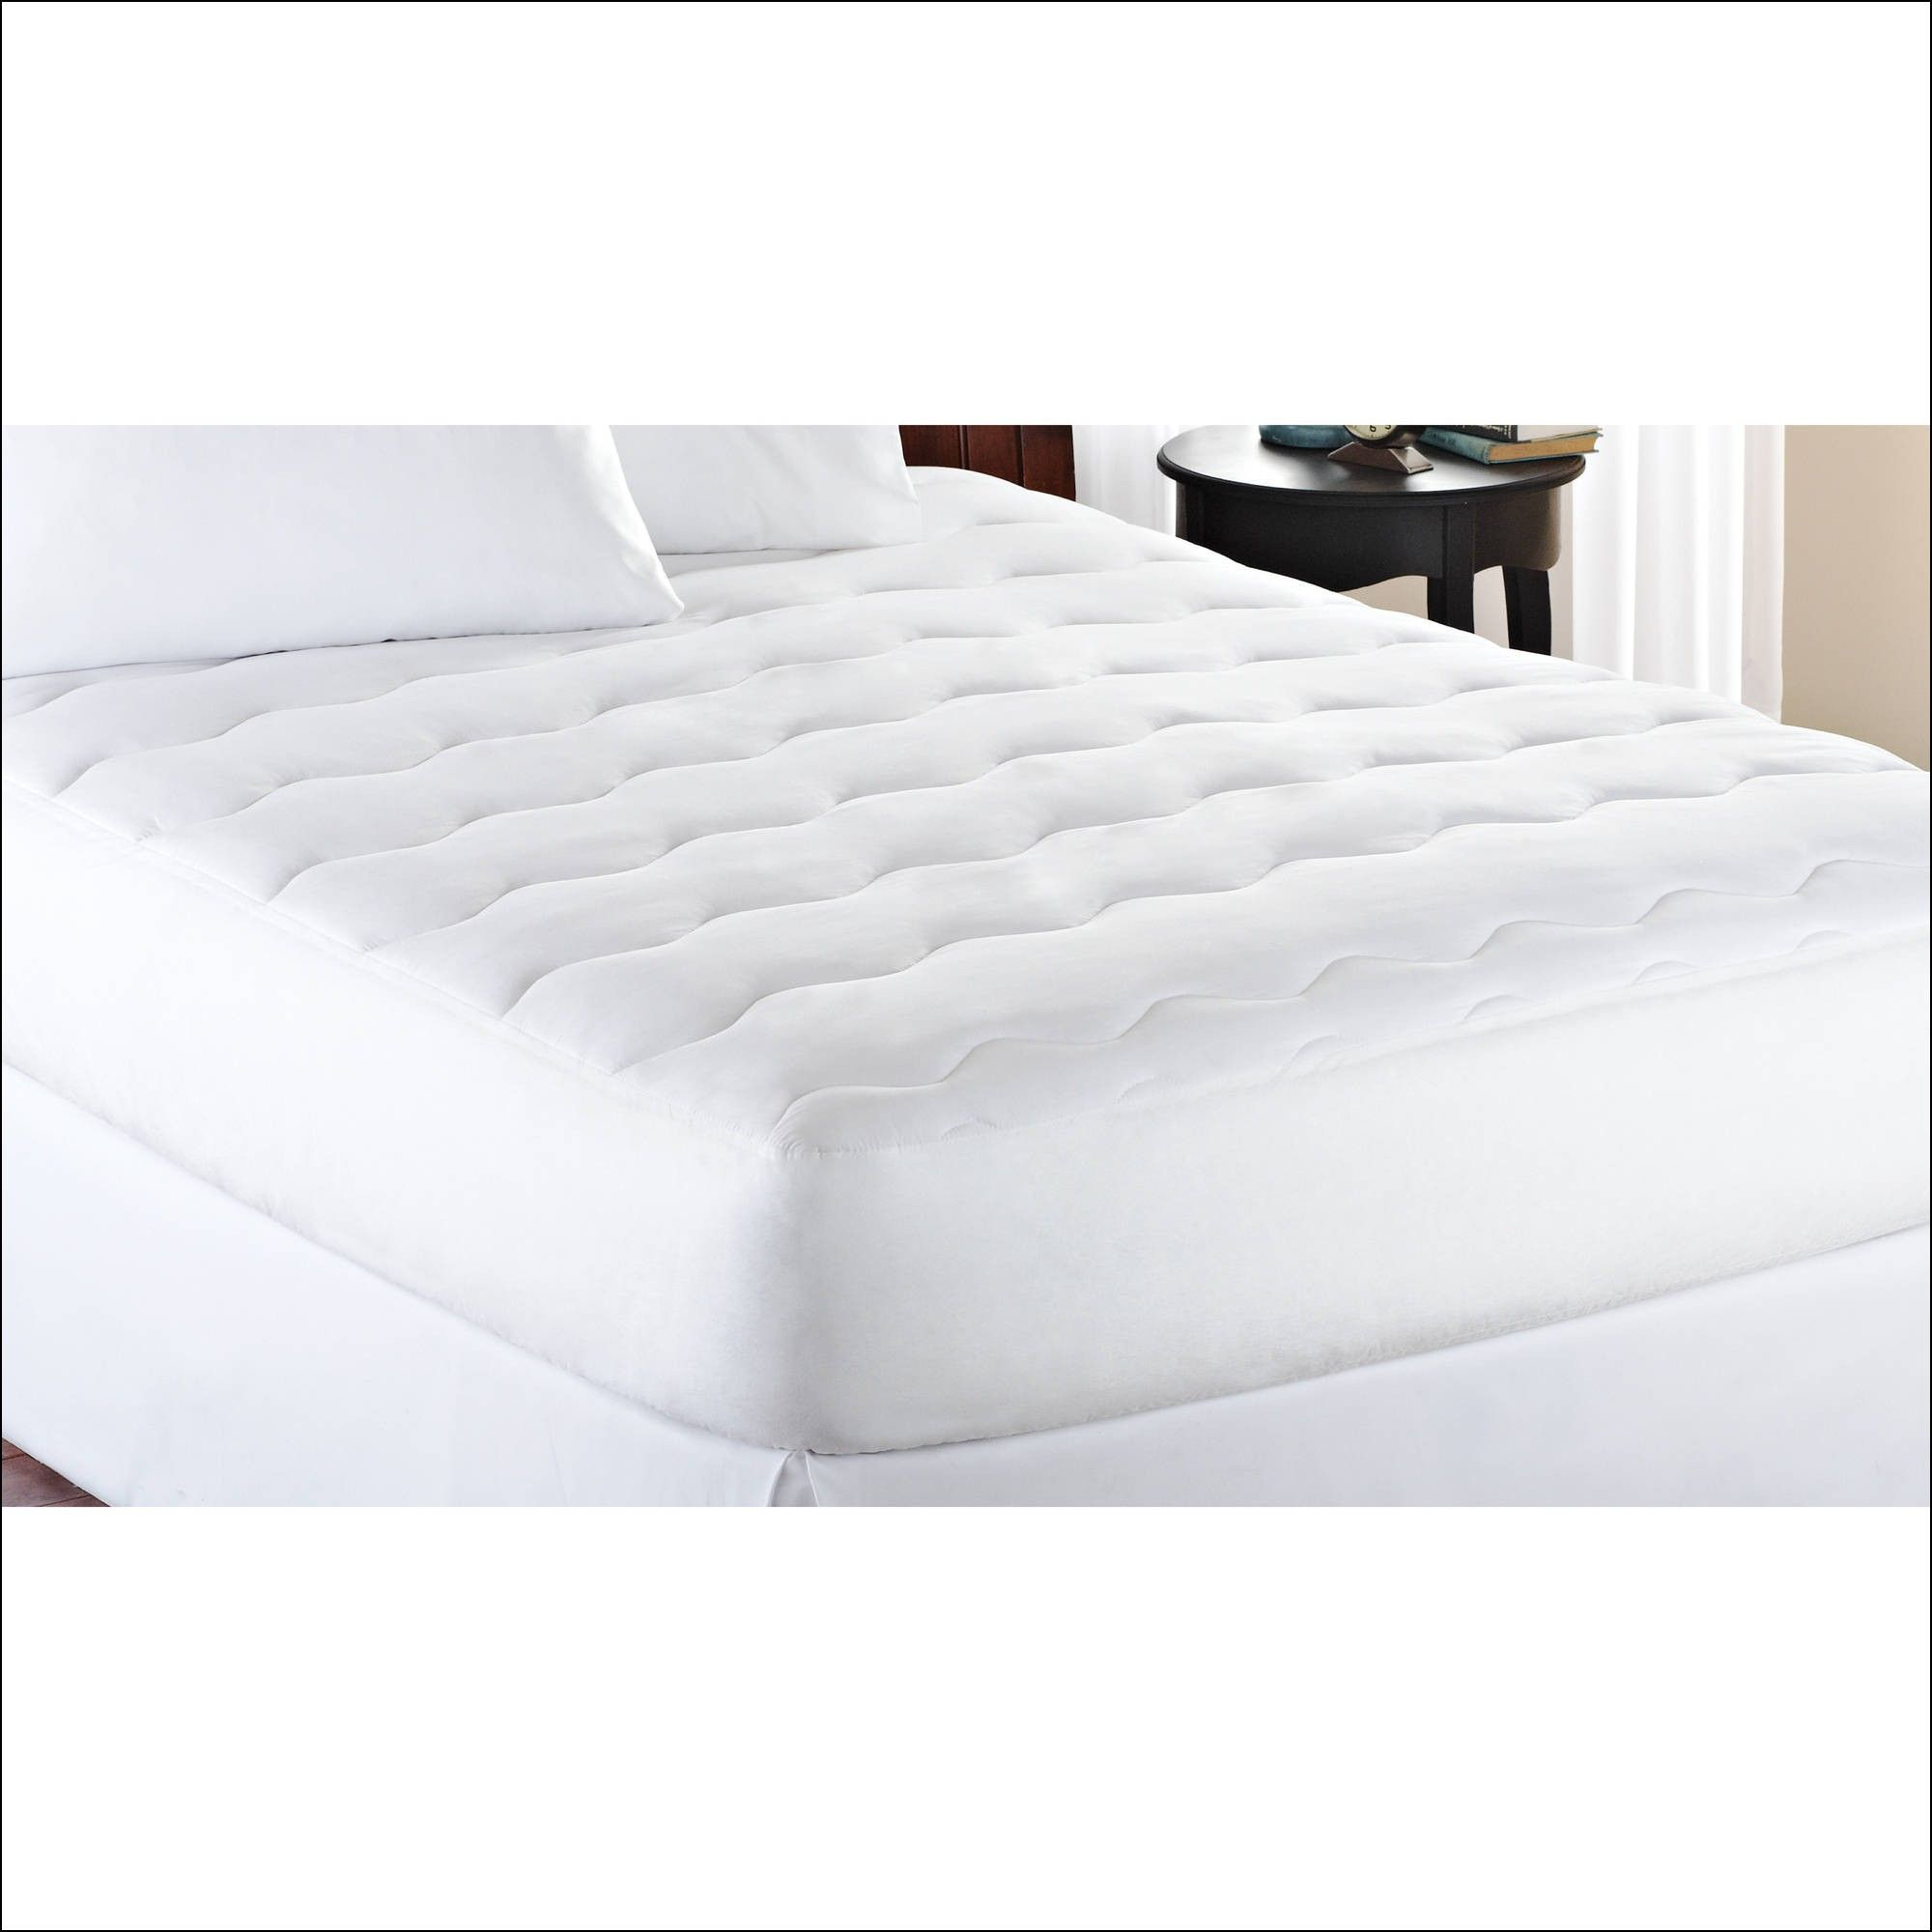 super pillow whistling luxury cay pillowtop product silver topper beautyrest plush mattress only ultra